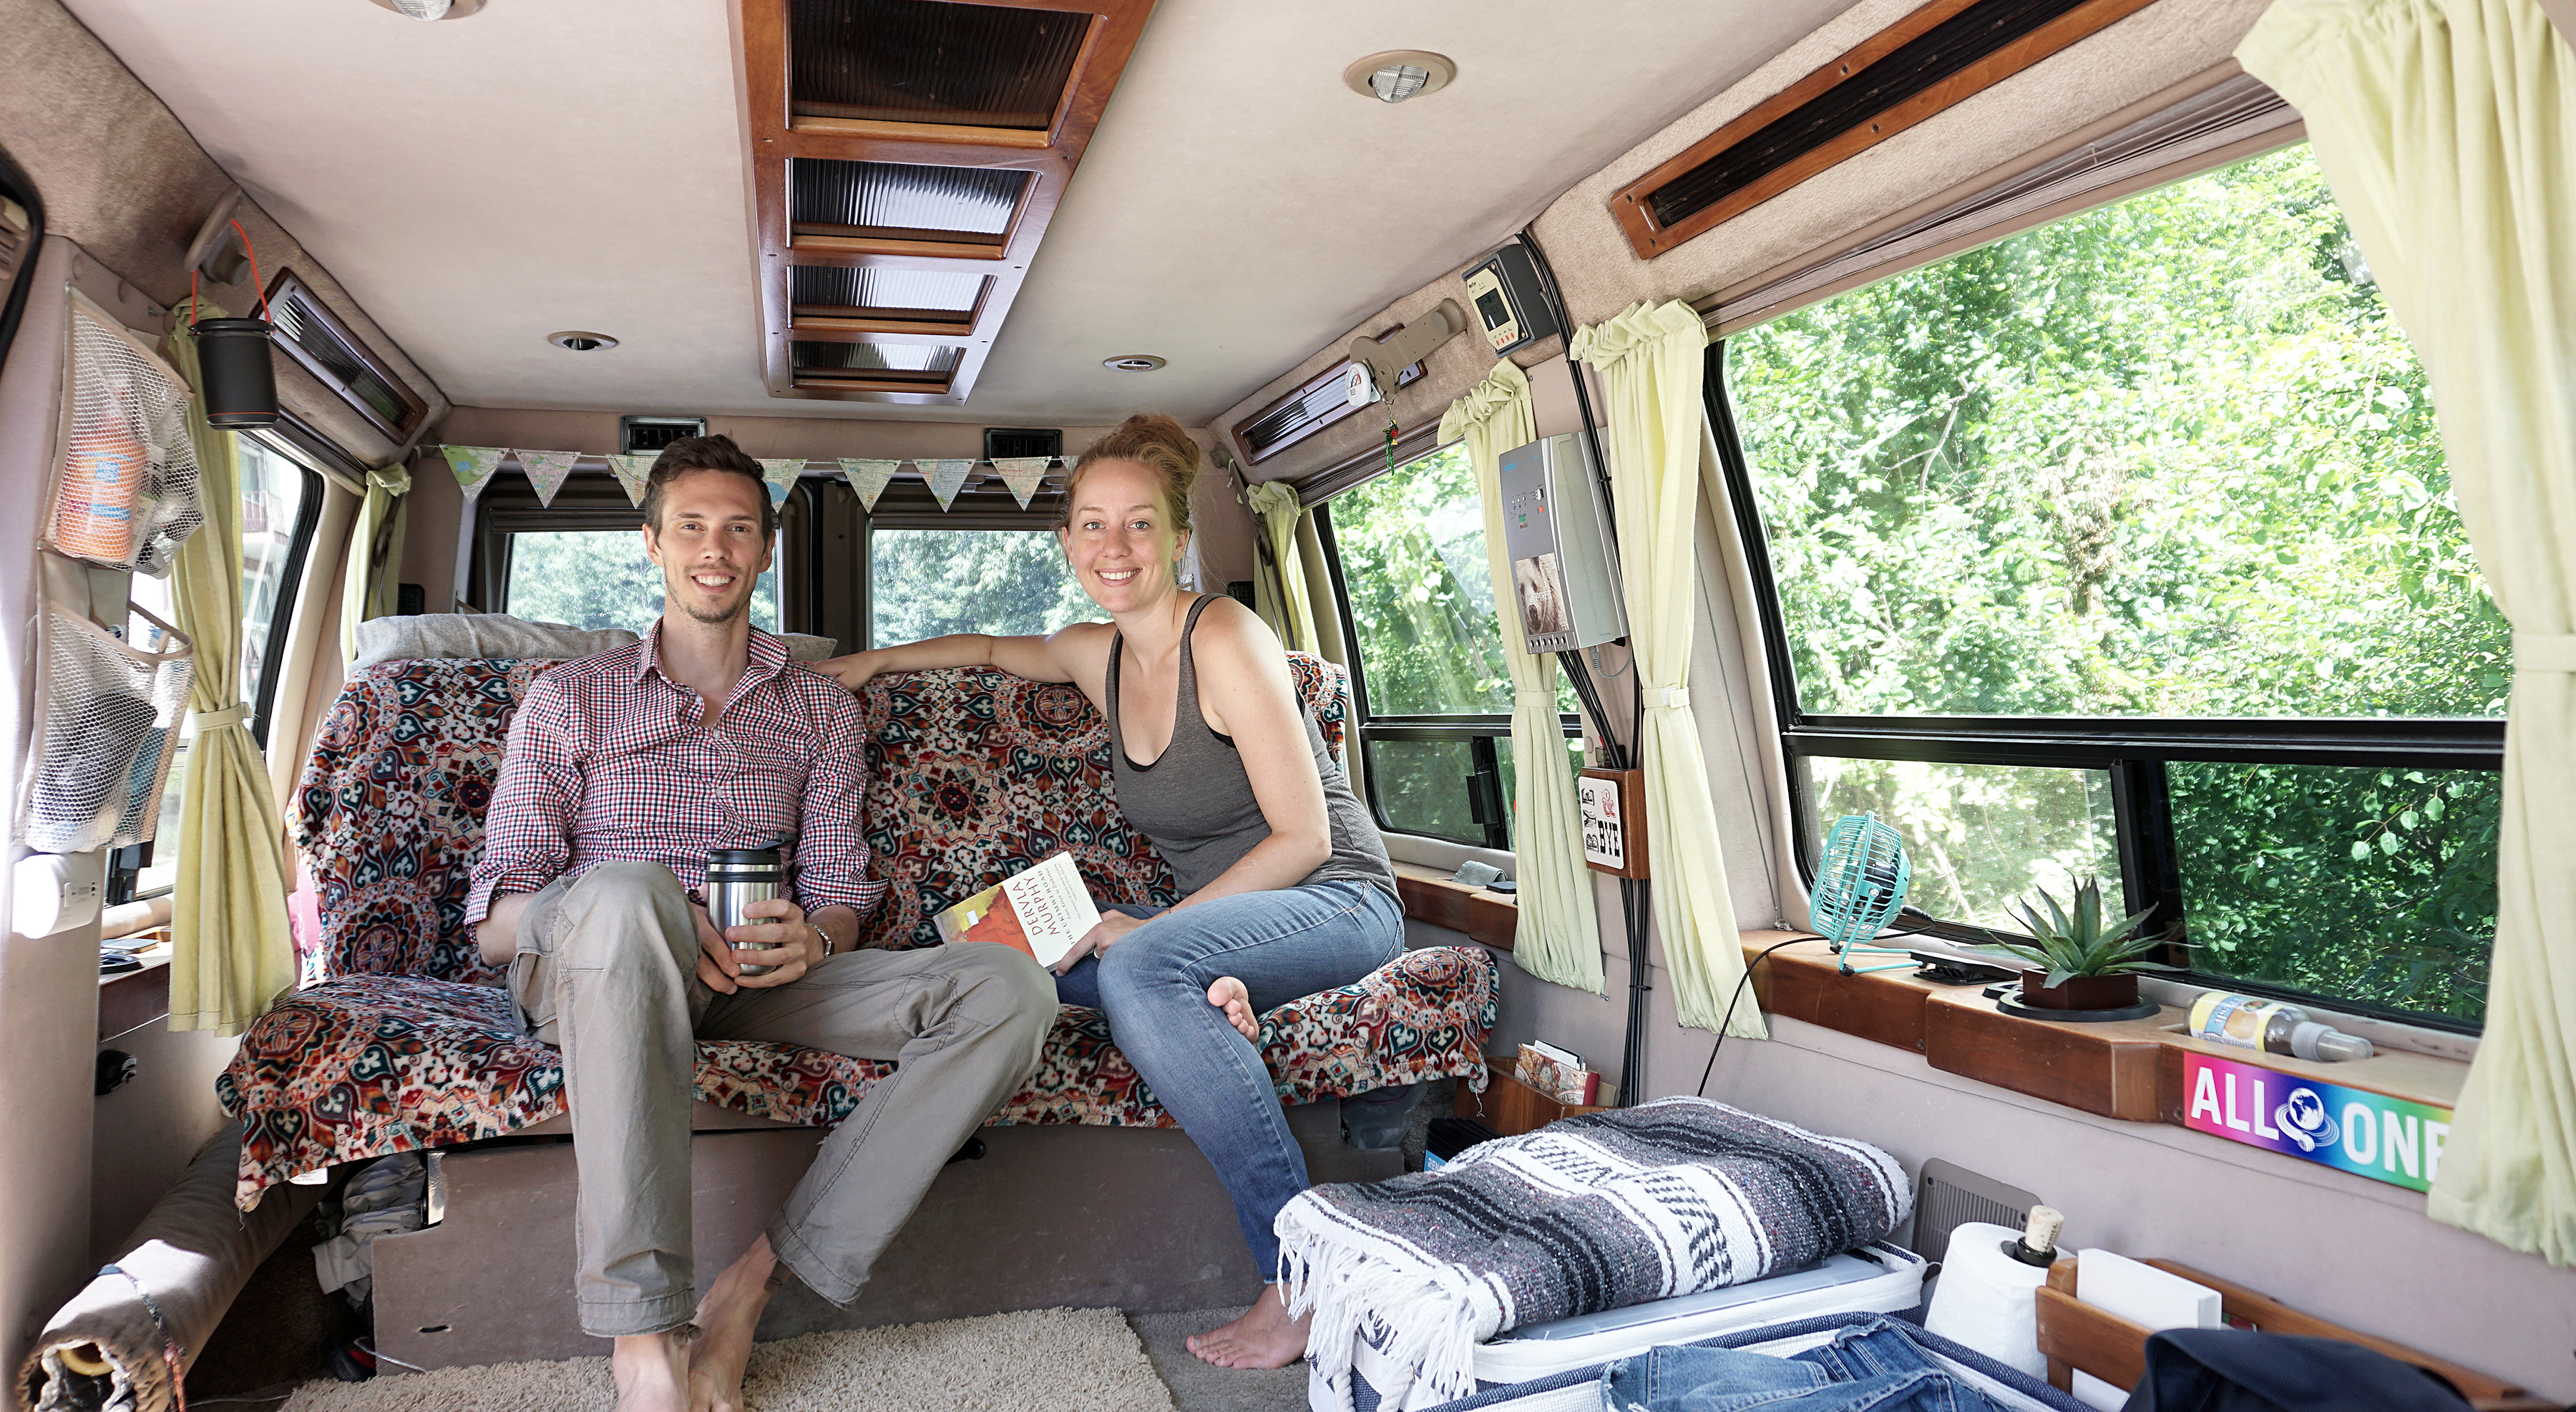 Mat and Danielle in the van - Summer 2015